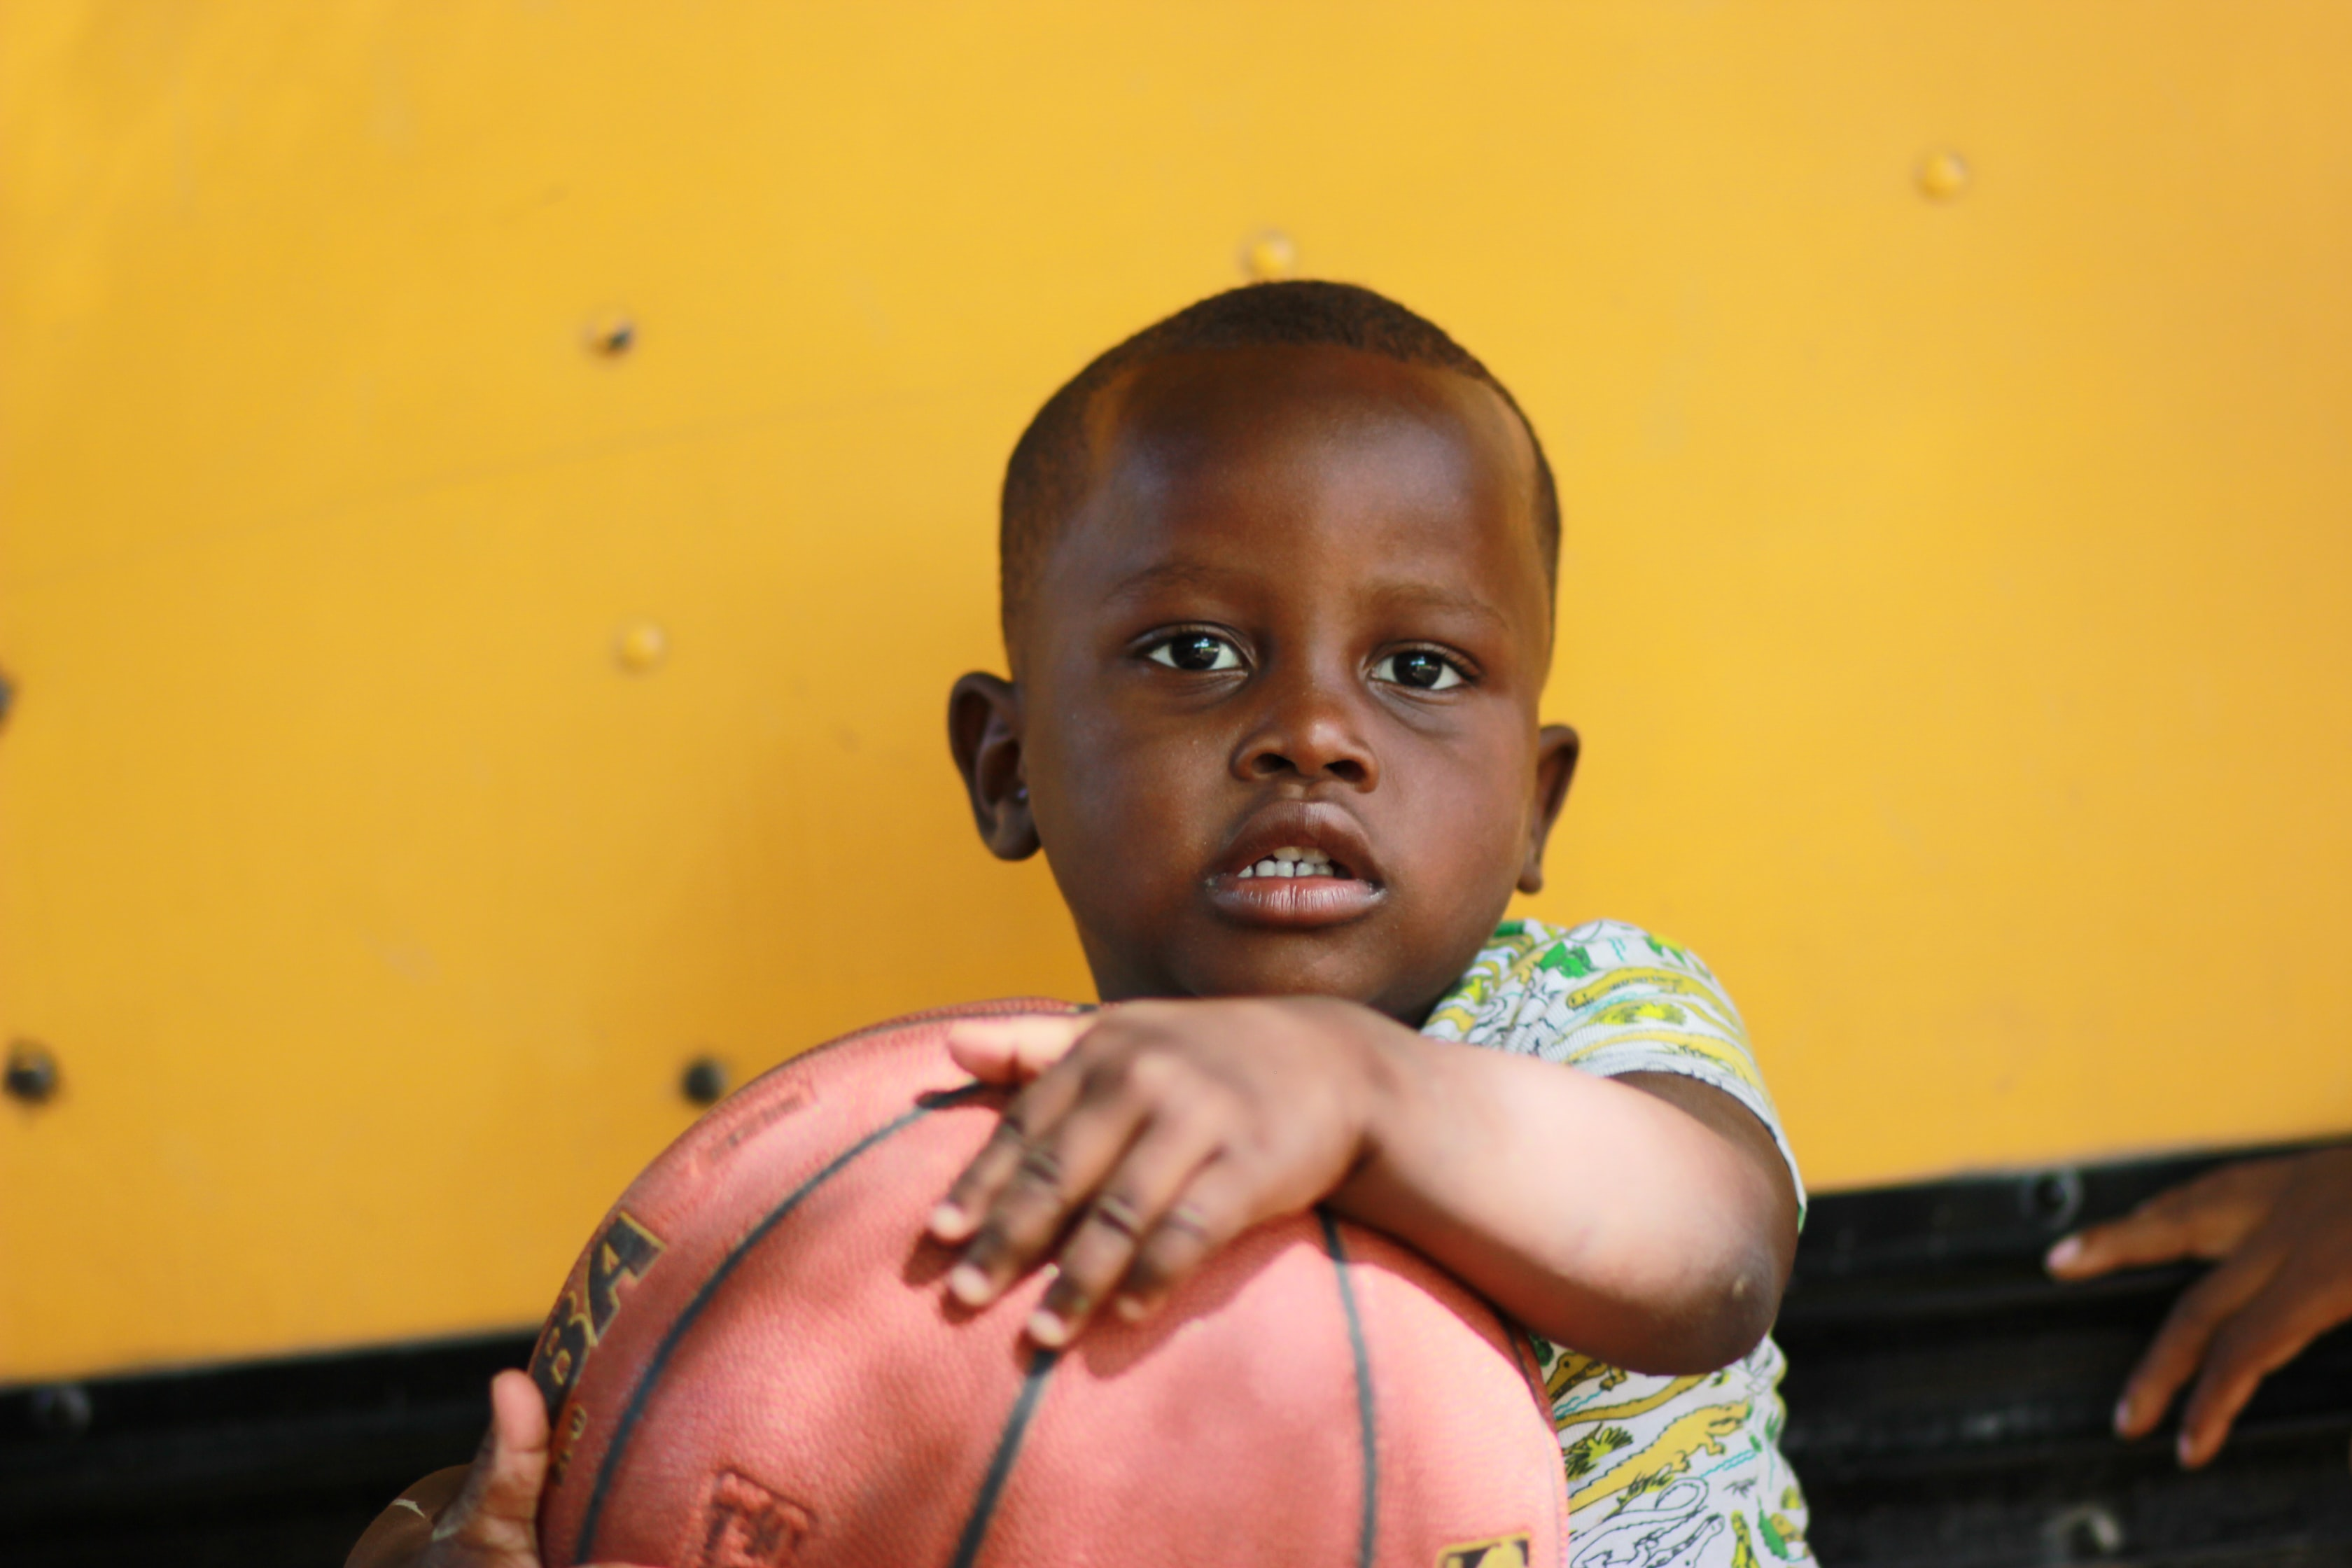 boy holding brown basketball